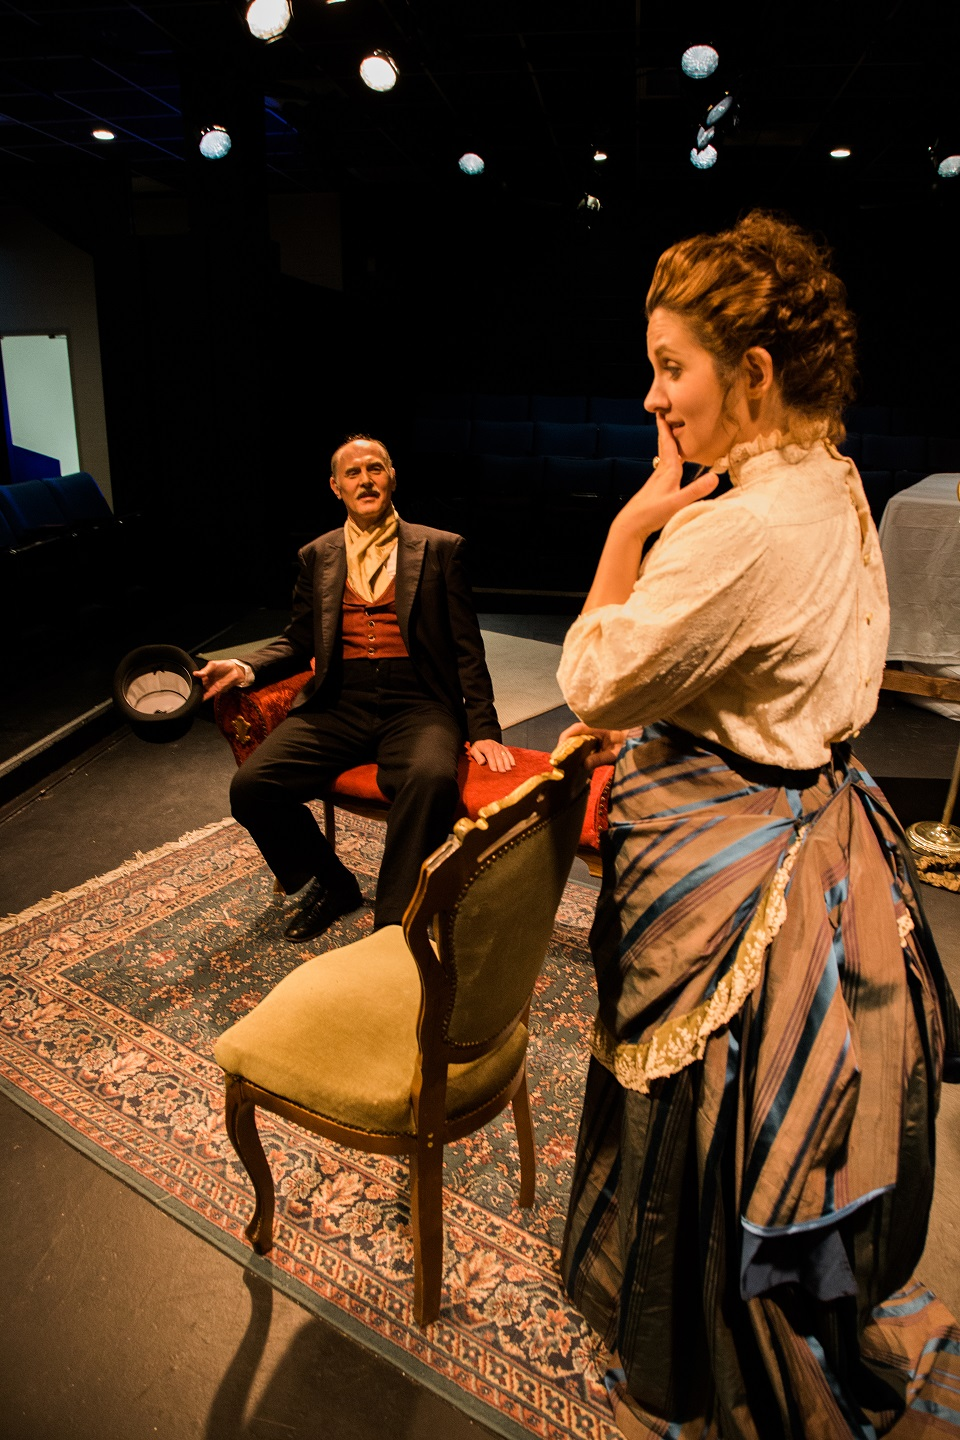 David Pasto and Lia Oldham in the 2016 production of In the Next Room (or the vibrator play)